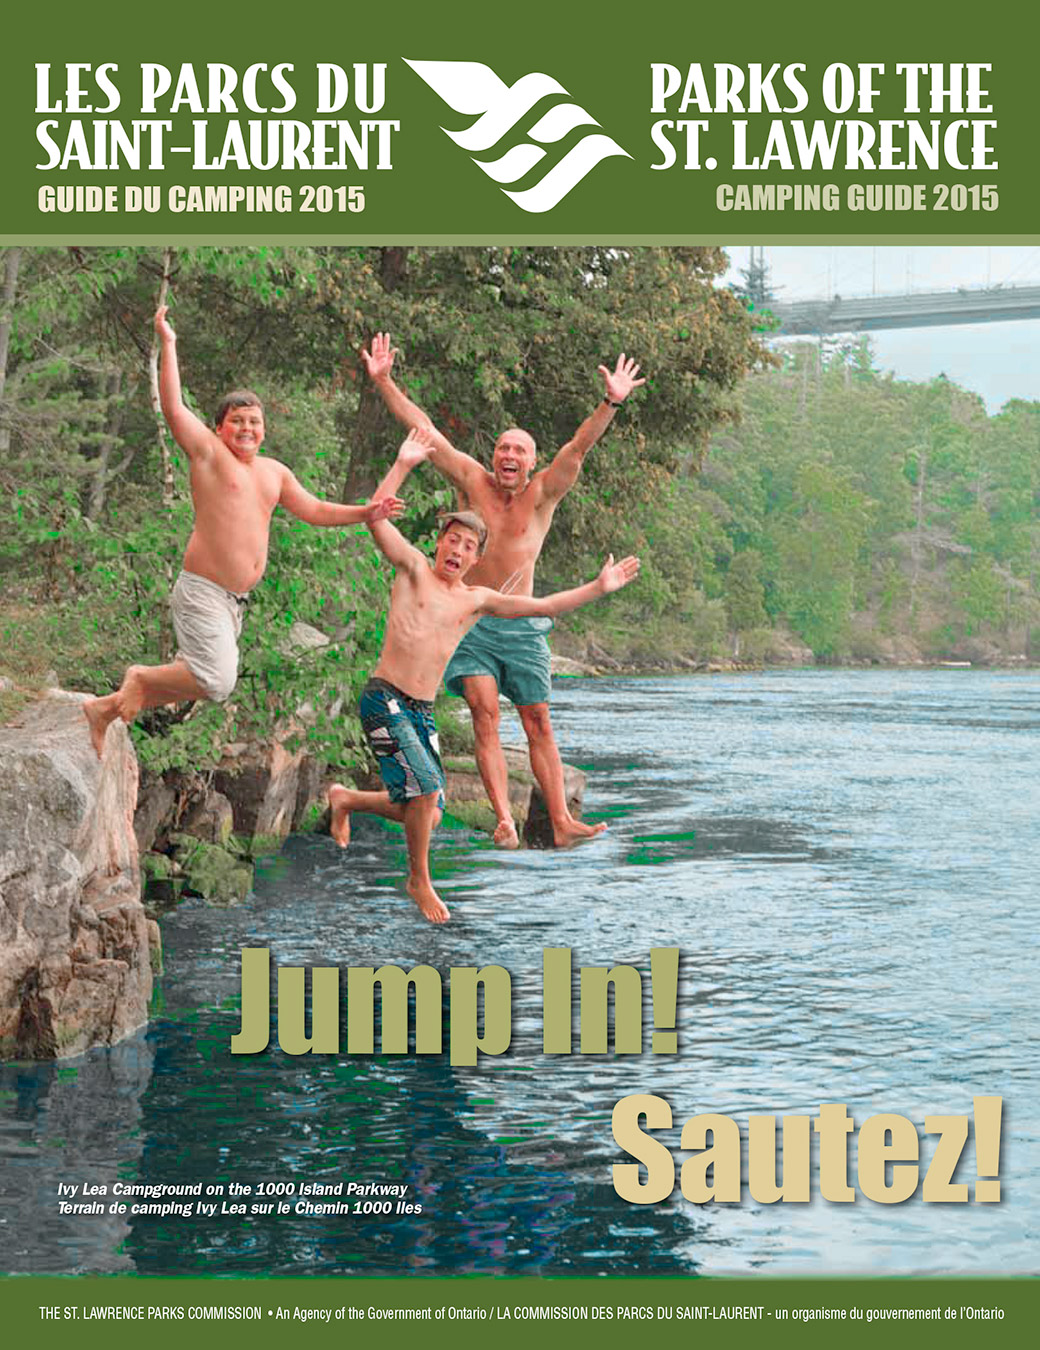 2015S St Lawrence Parks Camping Guide Cover